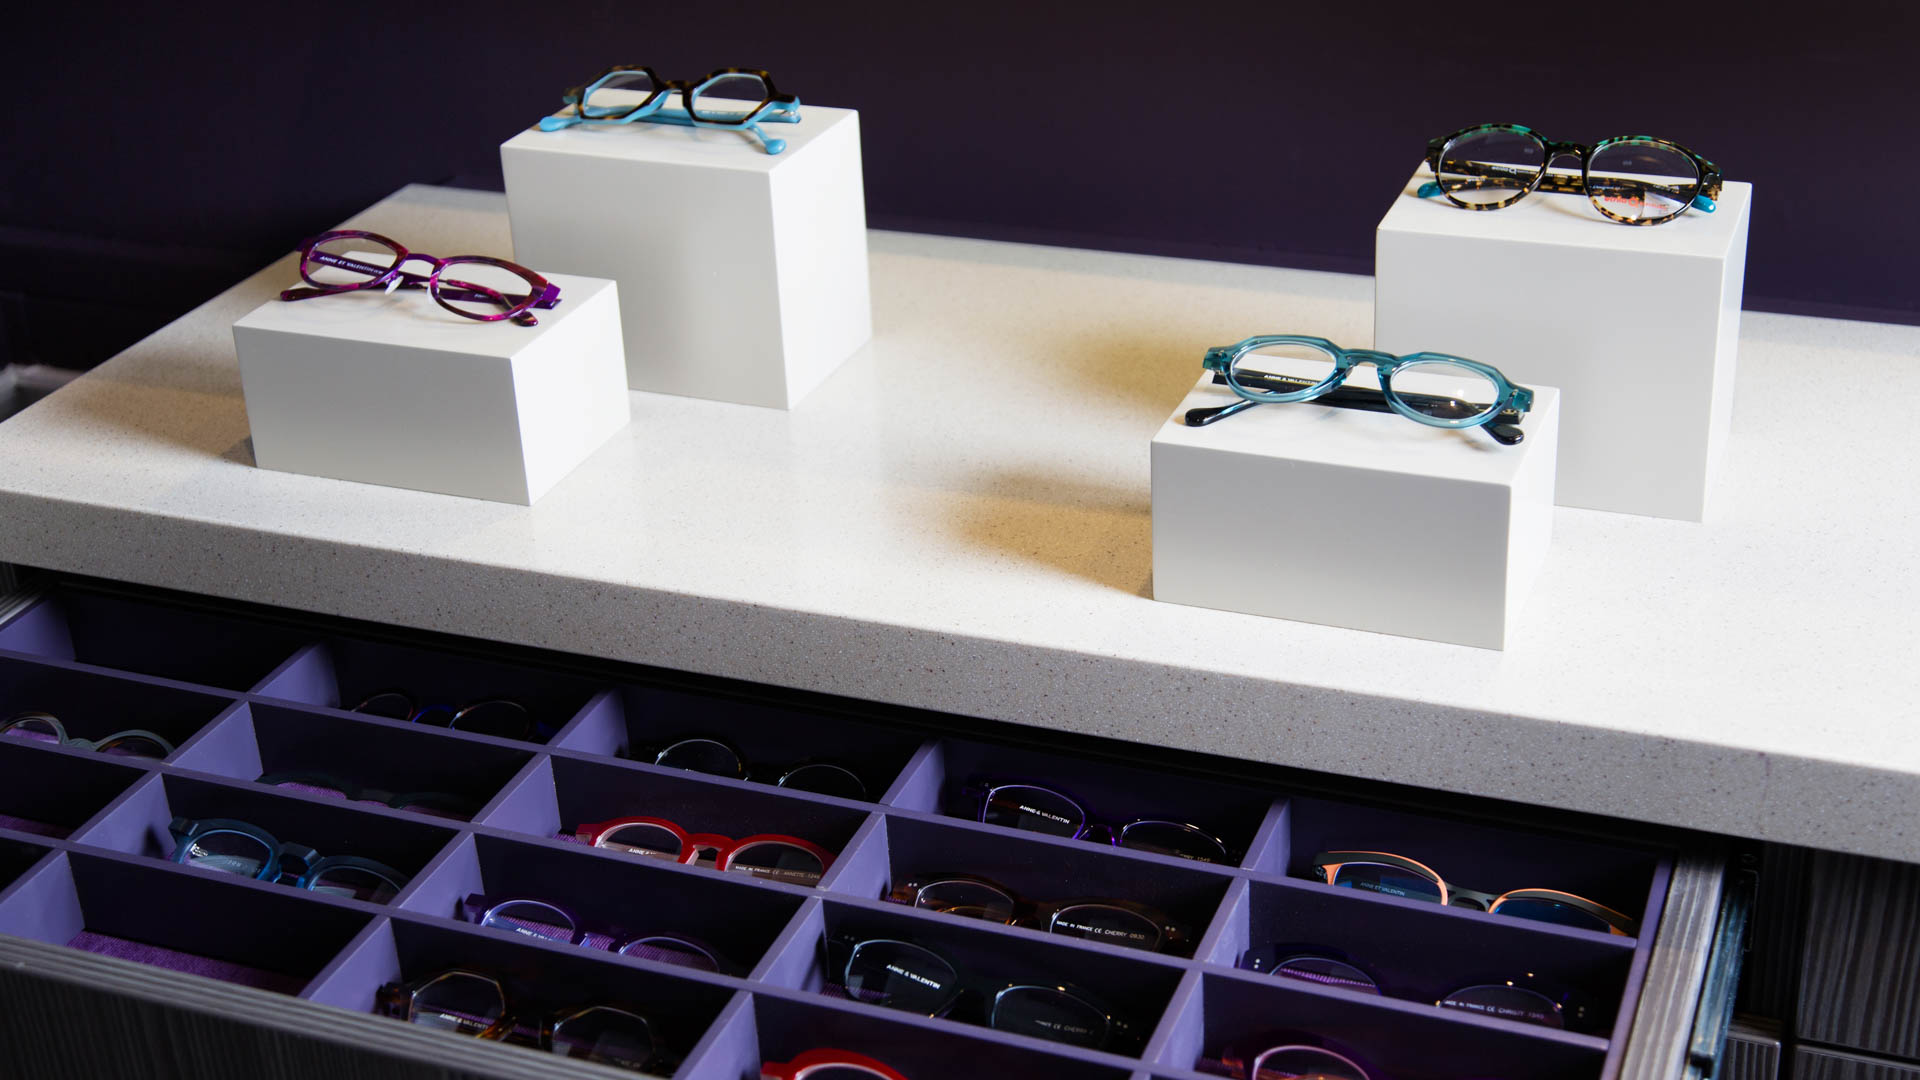 Stylish glasses display